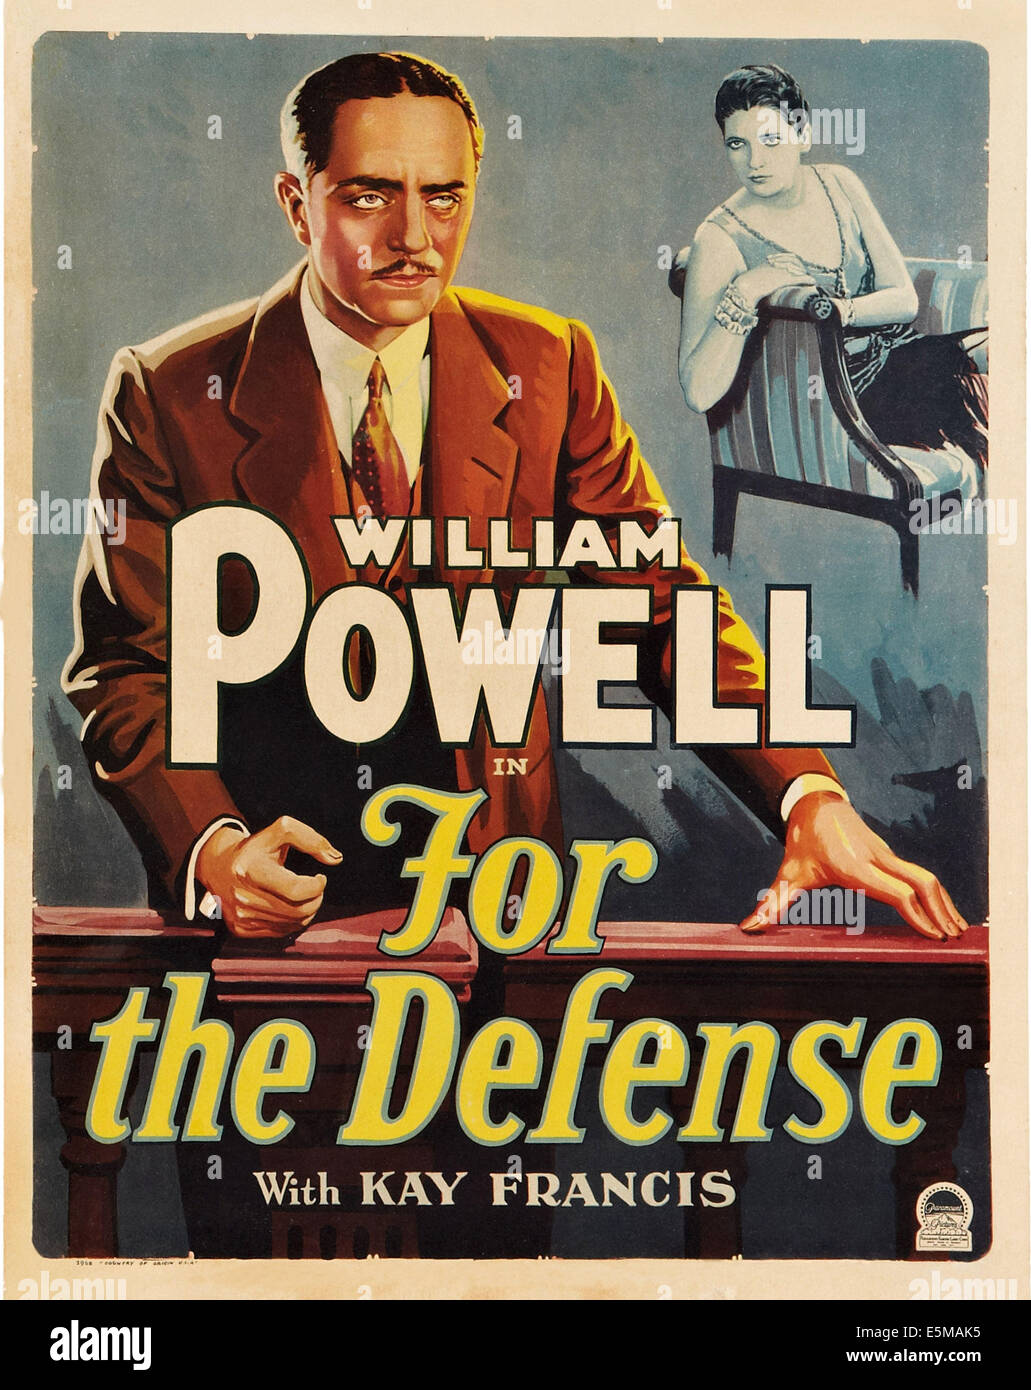 FOR THE DEFENSE, William Powell (front), Kay Francis, 1930 - Stock Image